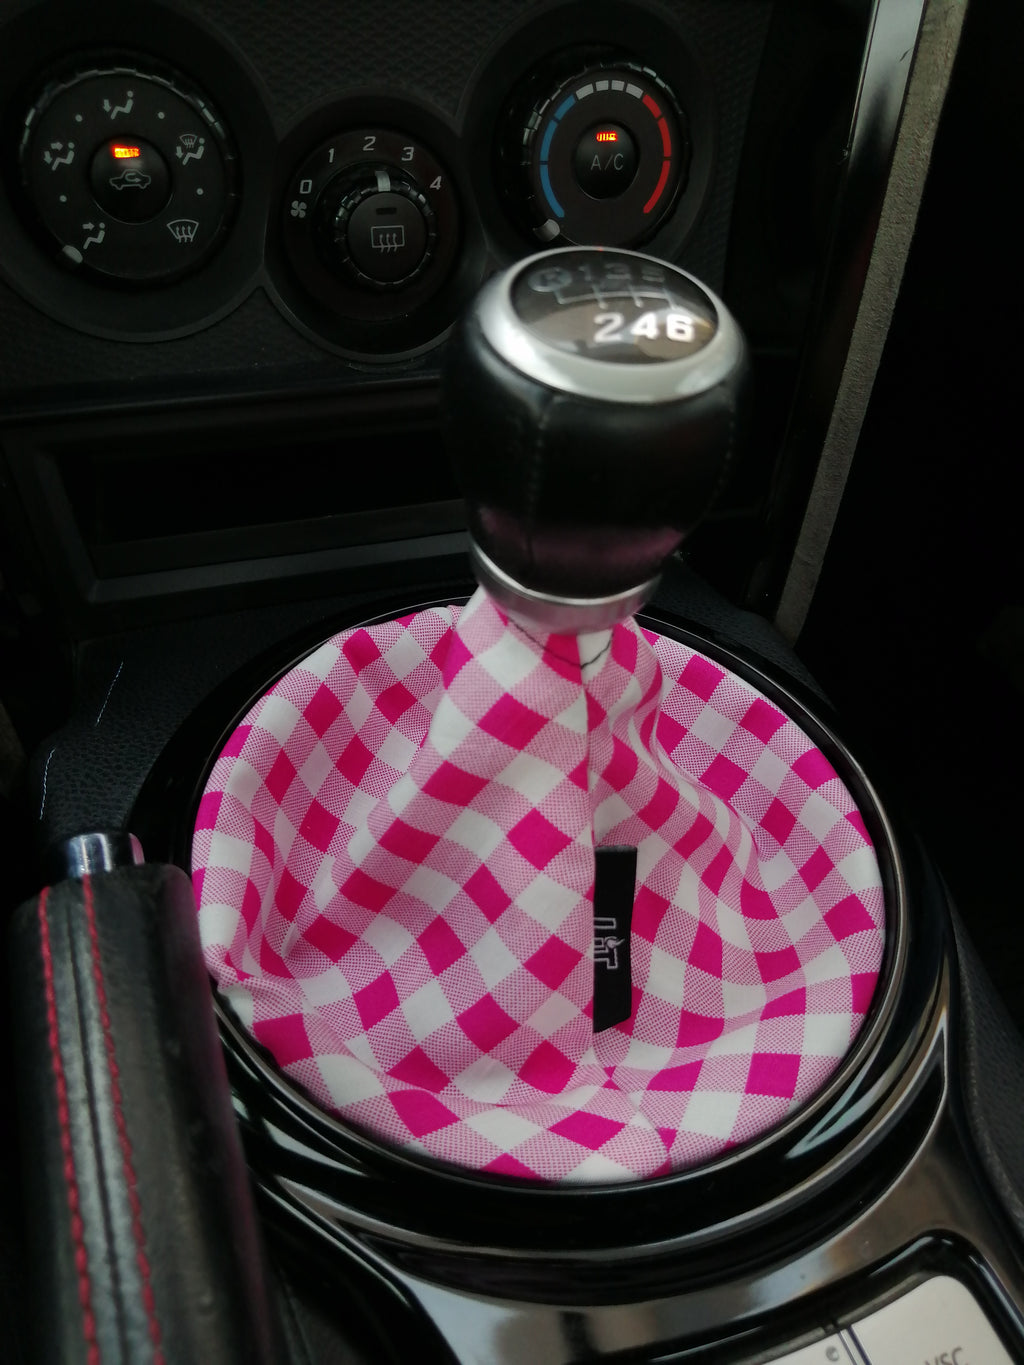 P&W Checkered Shift Boot